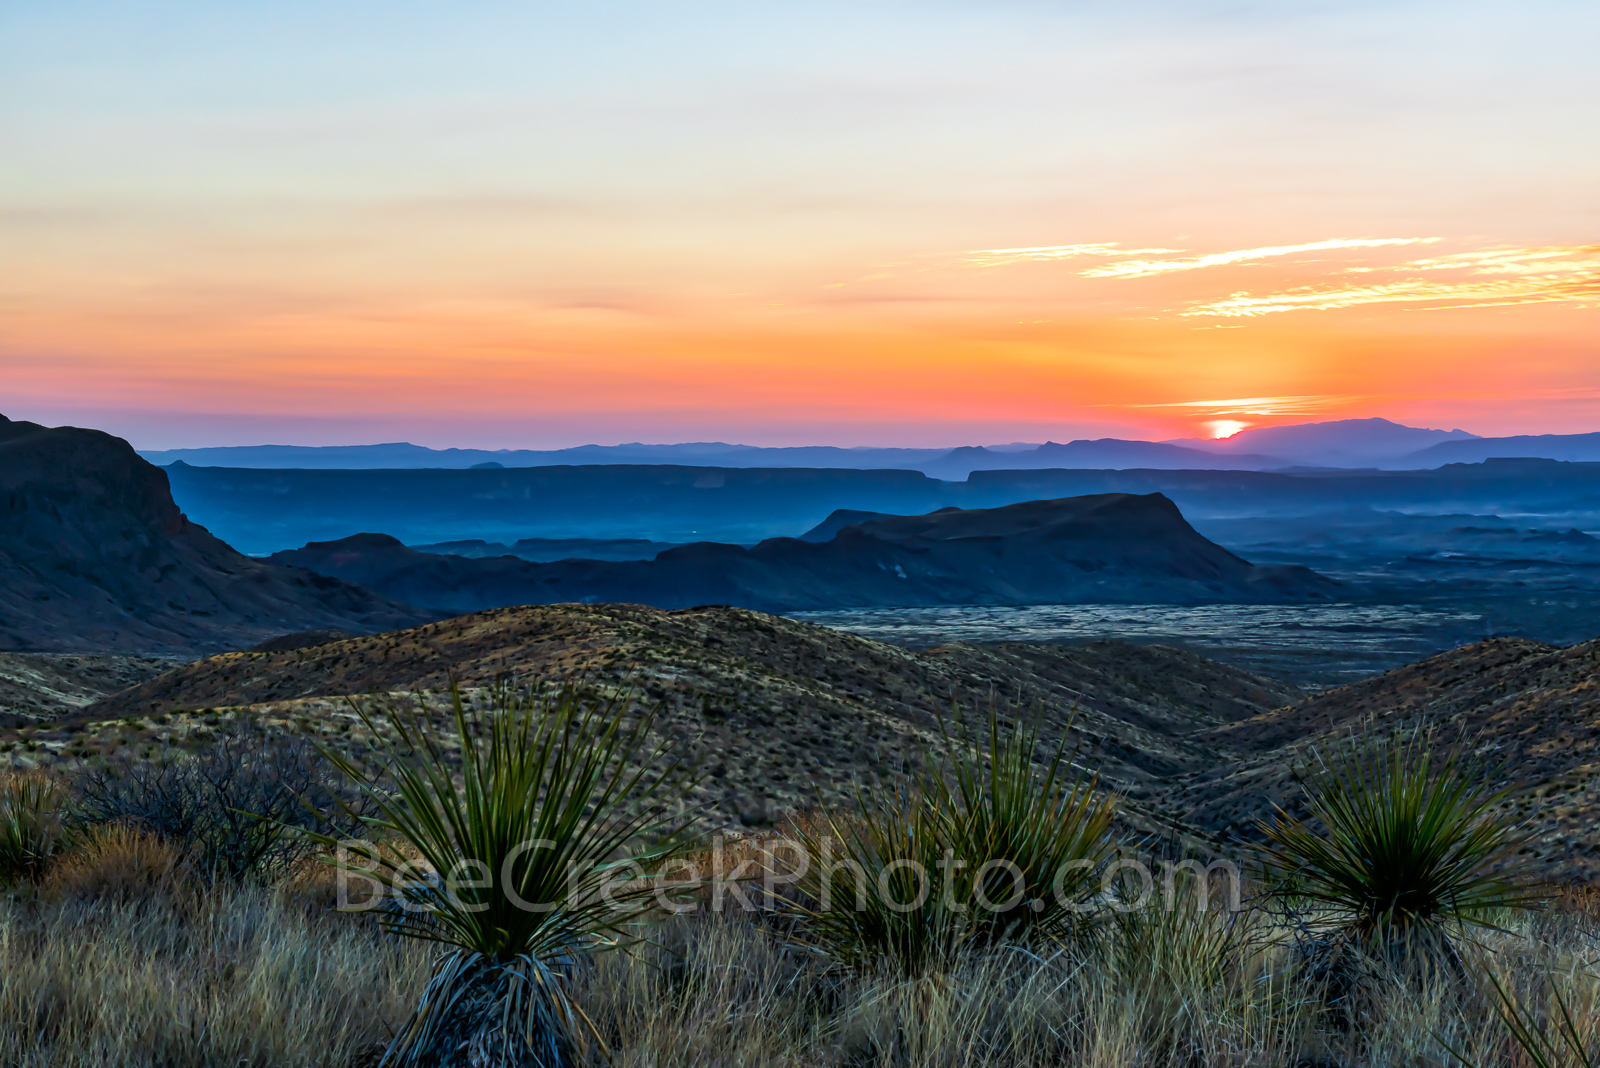 Big Bend National Park, Chihuahuan Desert, Santa Elena Canyon,  mountains, Mountains, Sierra Ponce, Sotol Vista Overlook, colorful, landscape, sky, sotol, sunset, yuccas, scenic, Texas, scenery, trave, photo